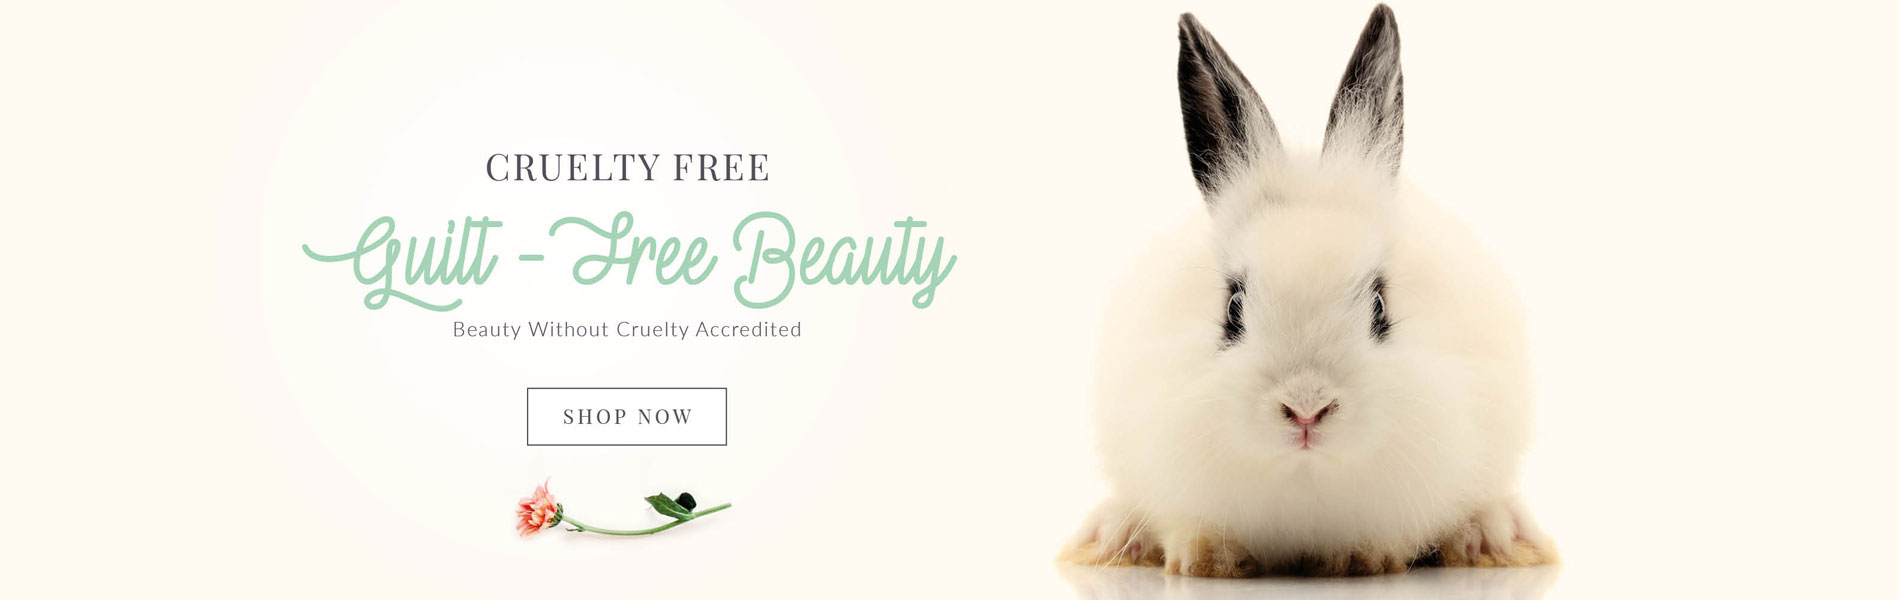 Cruelty Free Guilt Free Beauty - Beauty Without Cruelty Accredited